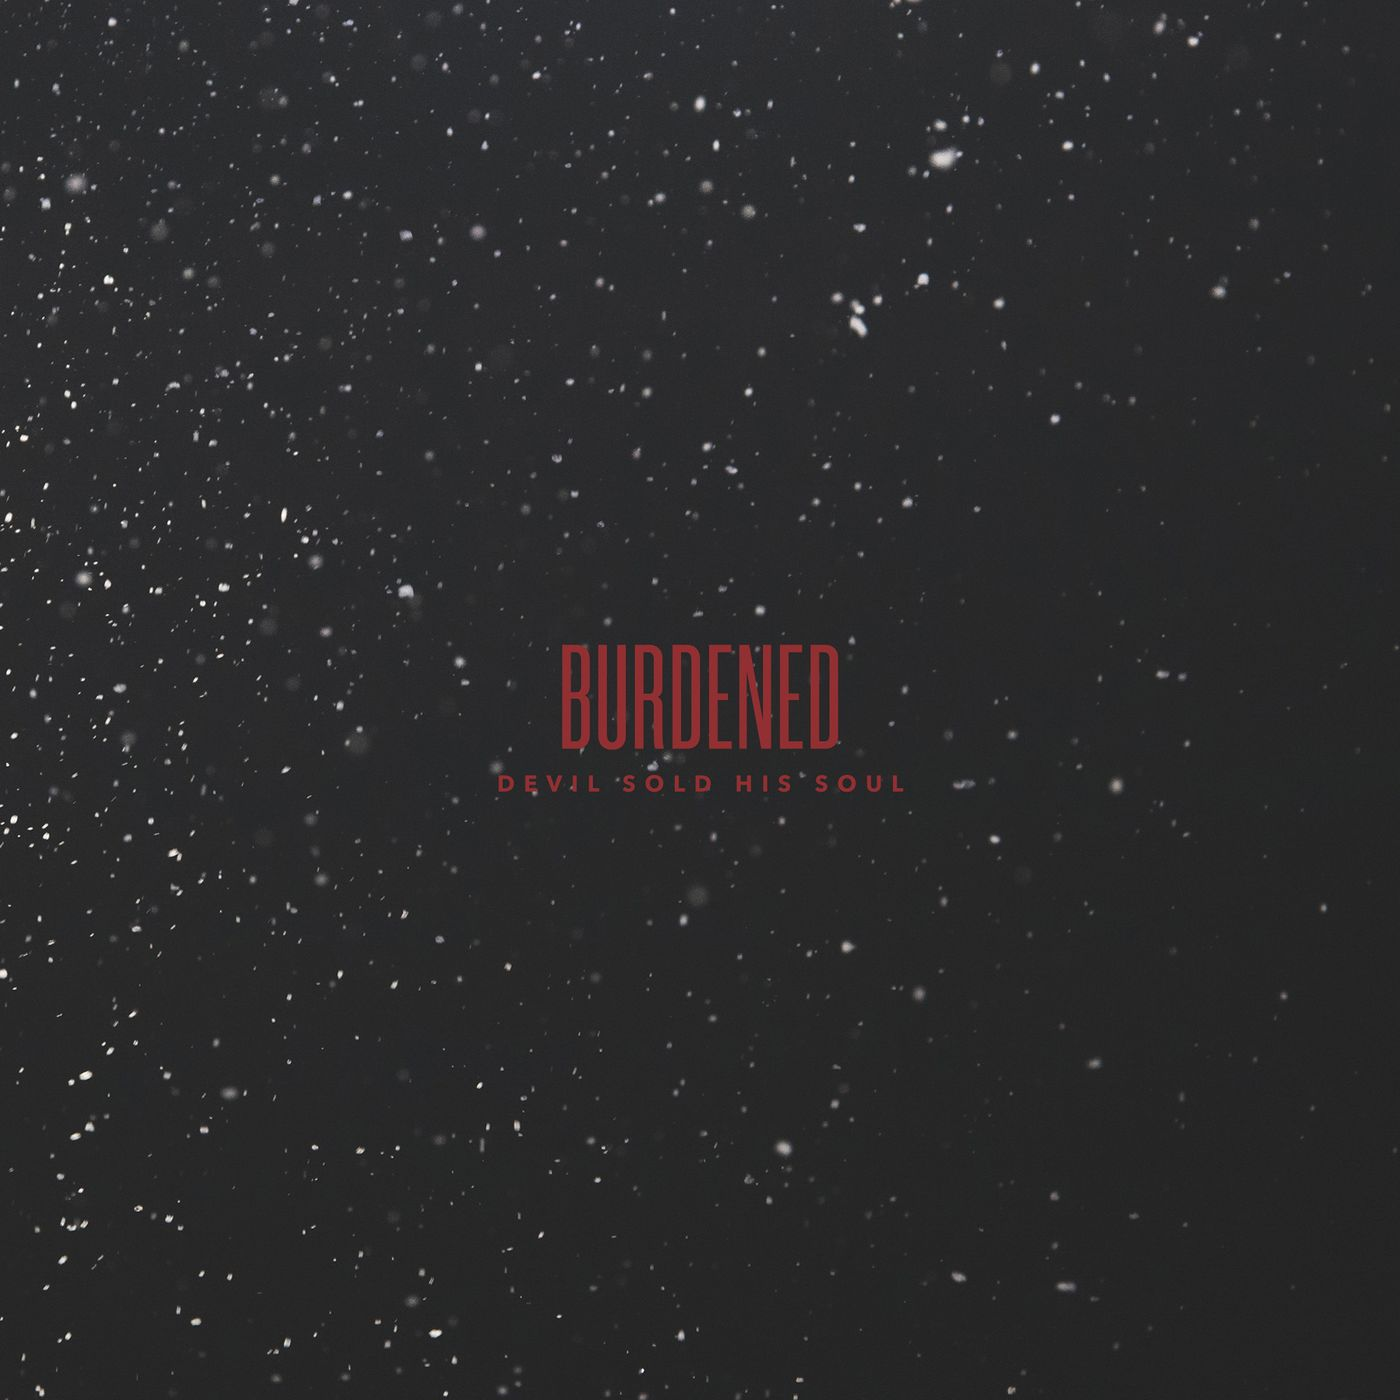 Devil Sold His Soul - Burdened [single] (2021)